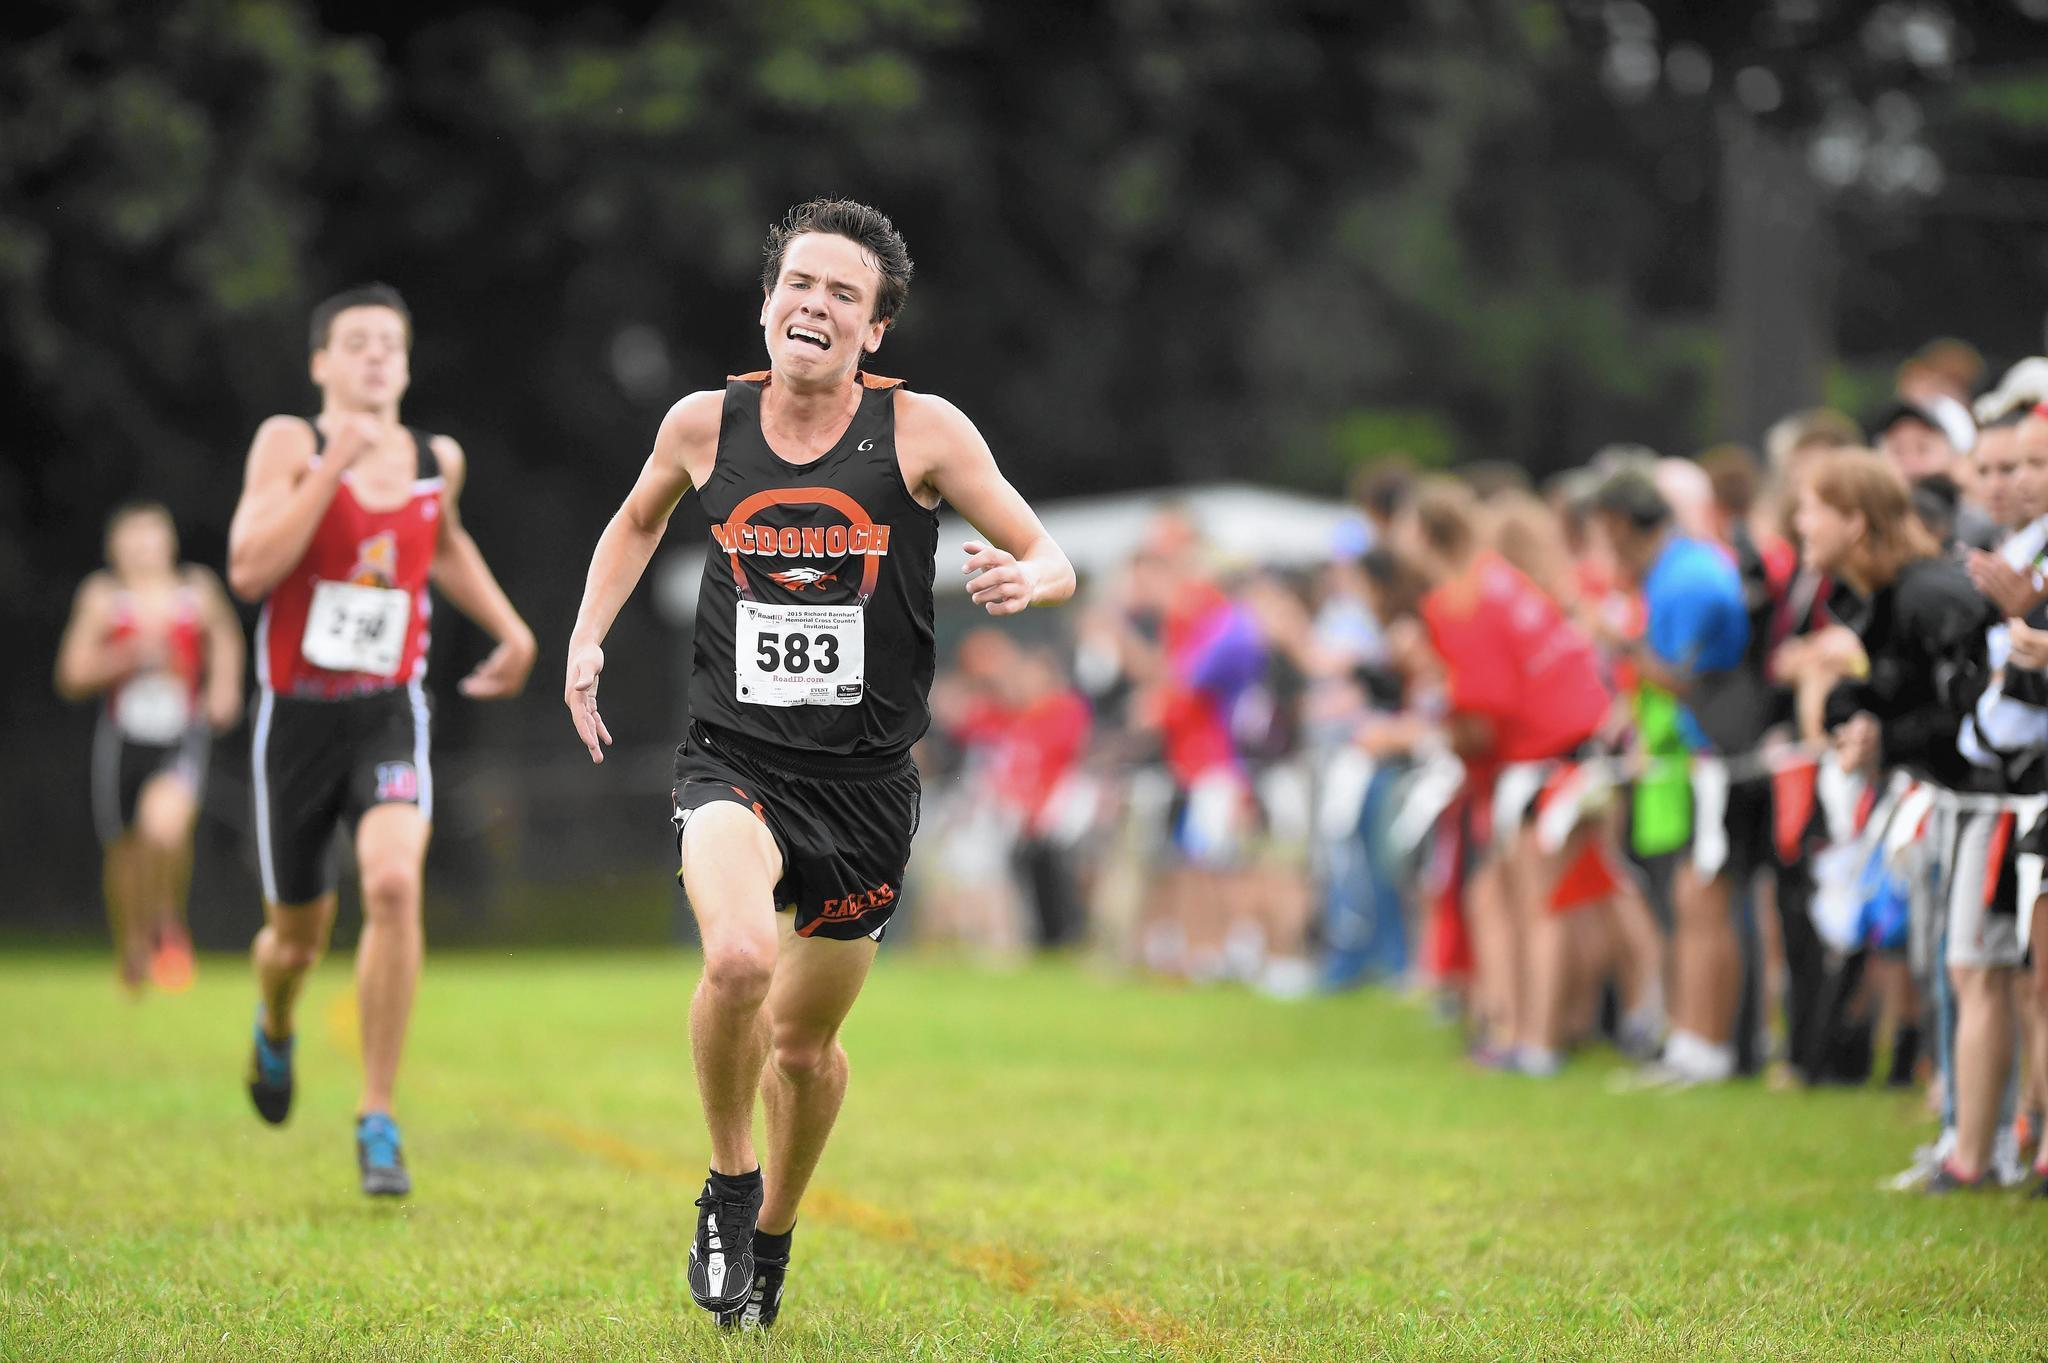 McDonogh track star gears up for competition in Cuba ...